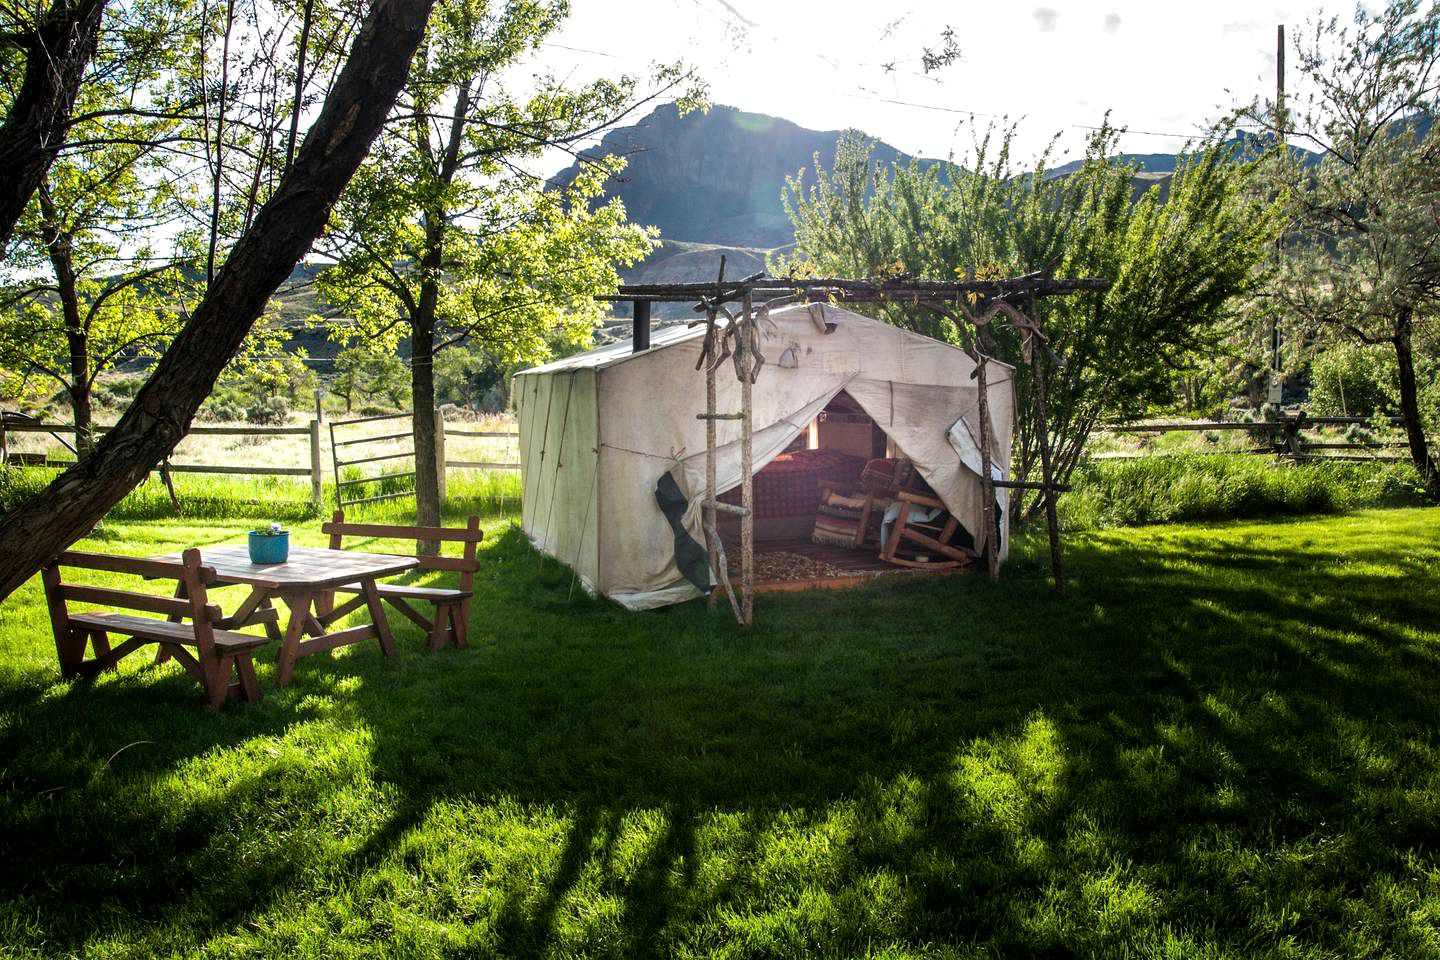 Tents (Cody, Wyoming, United States)